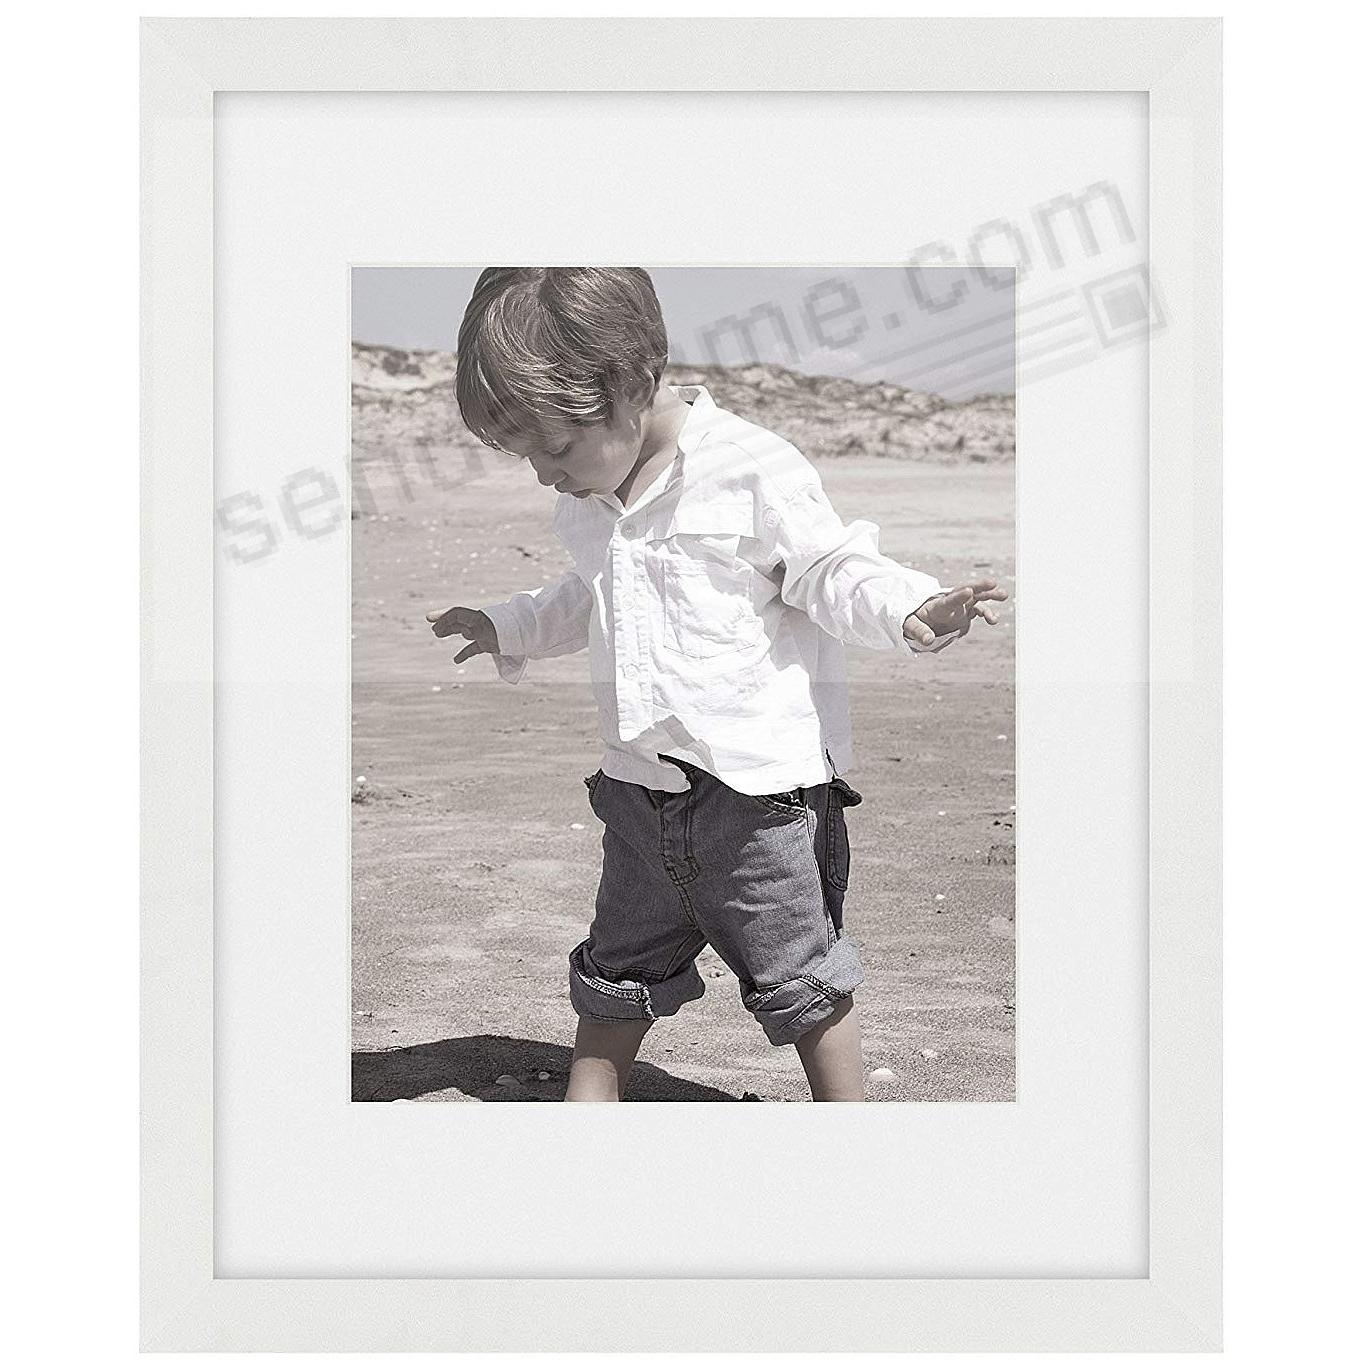 Matte-White TRIBECA Archival 8x10/5x7 Matted Wood frame by ARTCARE®